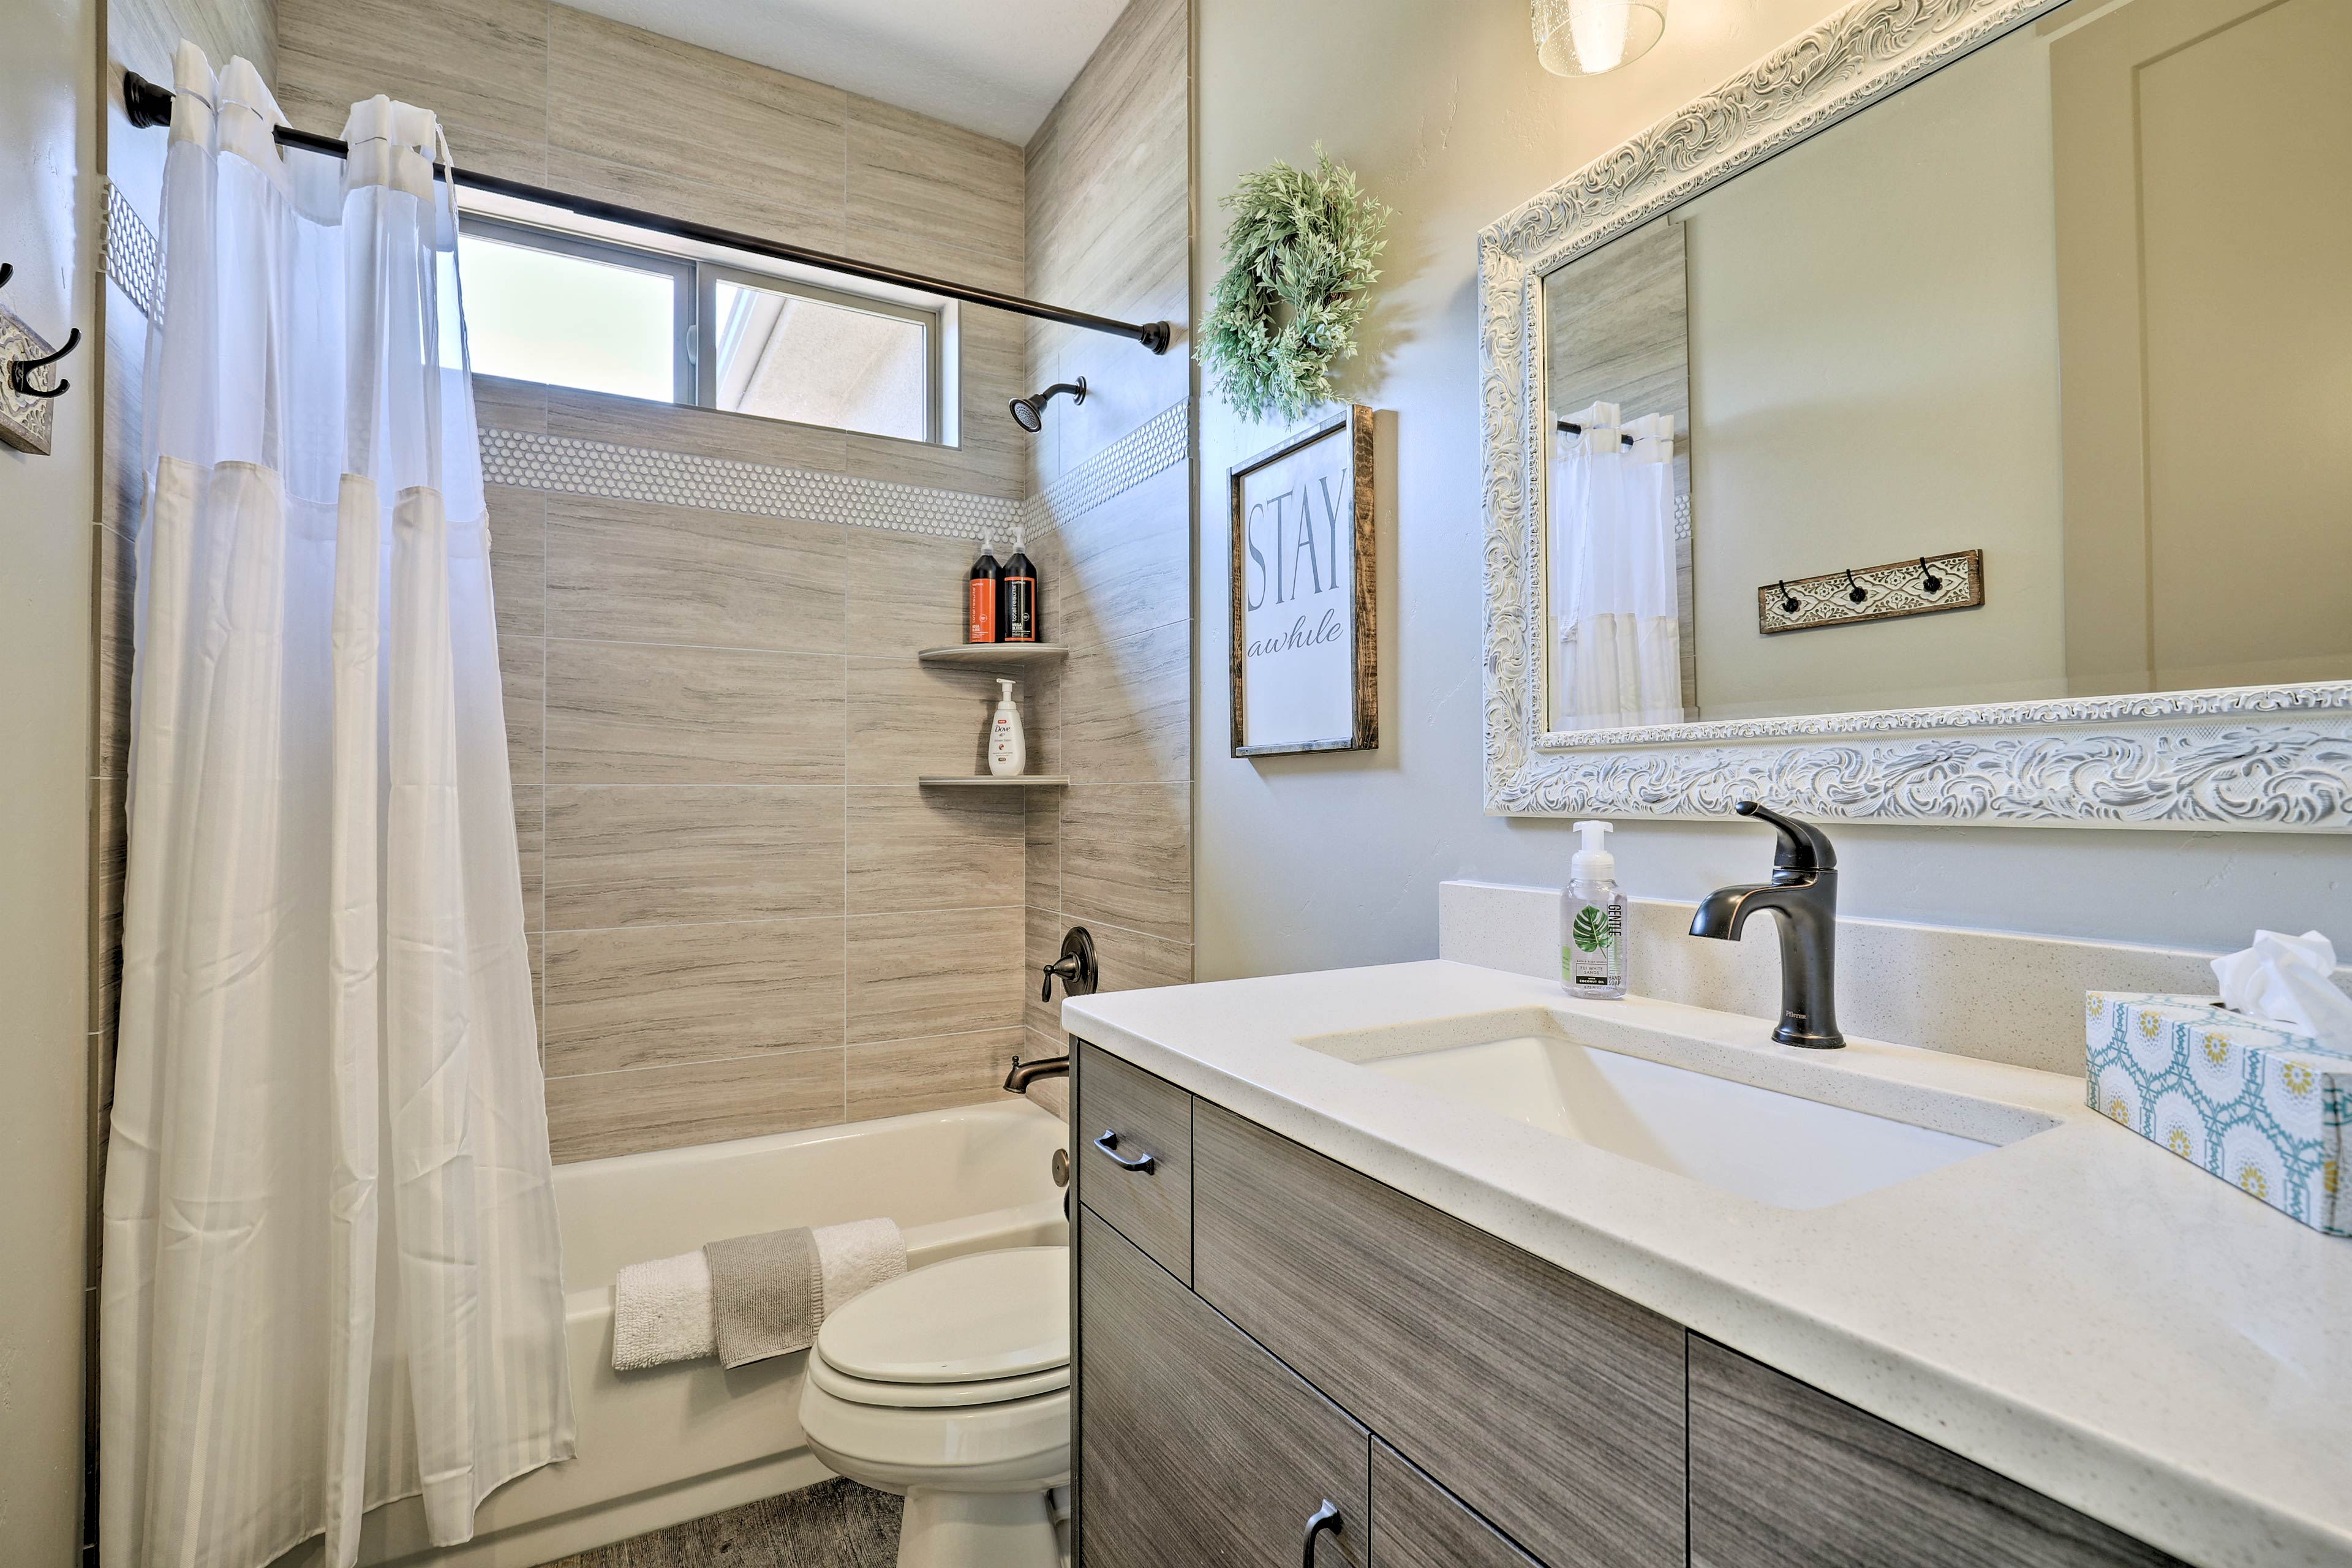 The second bathroom features a shower/tub combo.